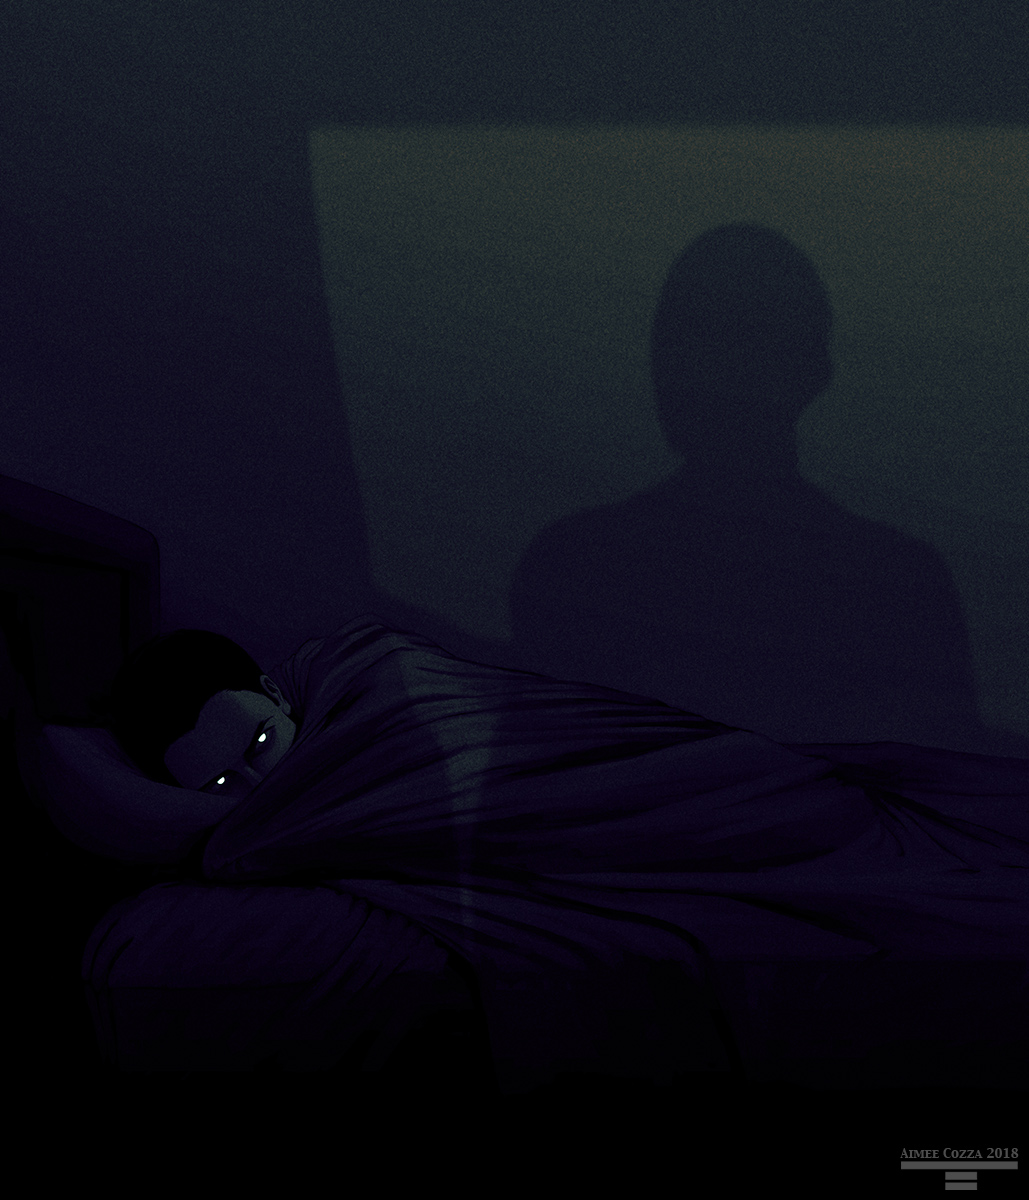 A picture of a man lying curled in bed sheets in a very dark room. His eyes are flashing white in the darkness as a cast shadow of another figure looking in from a doorway looms overhead.